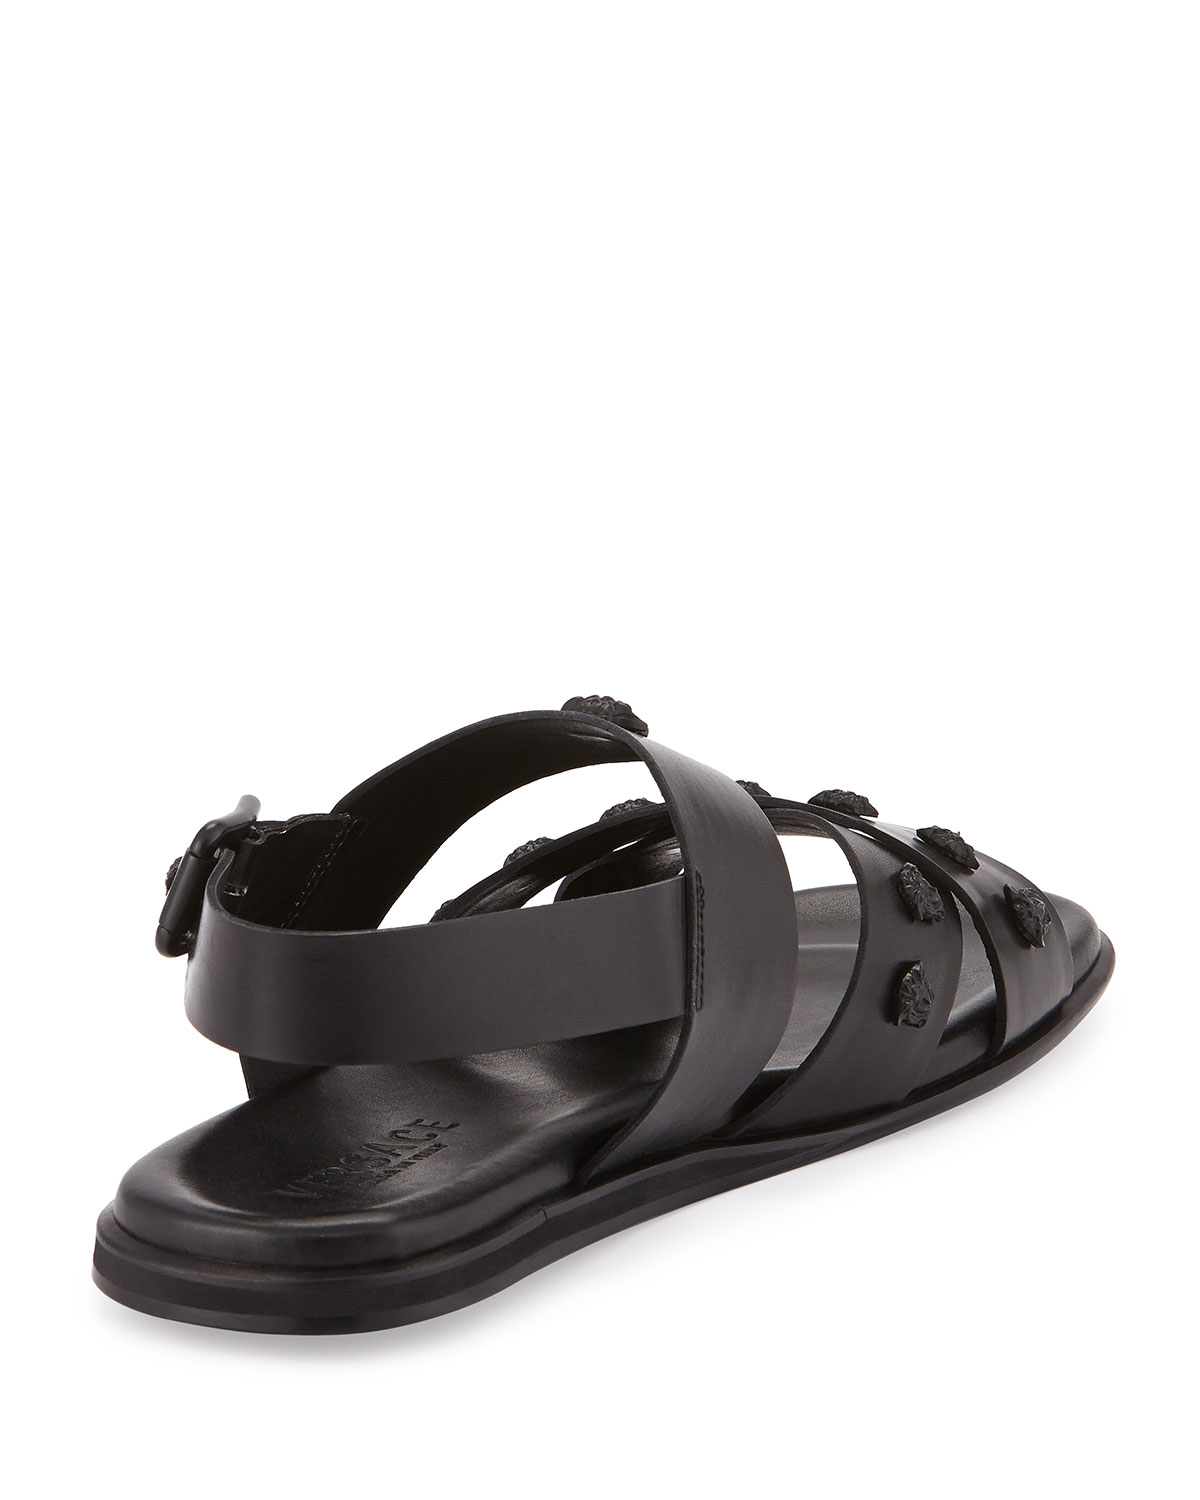 9c7077743f3858 Lyst - Versace Men s Leather Strappy Sandal in Black for Men